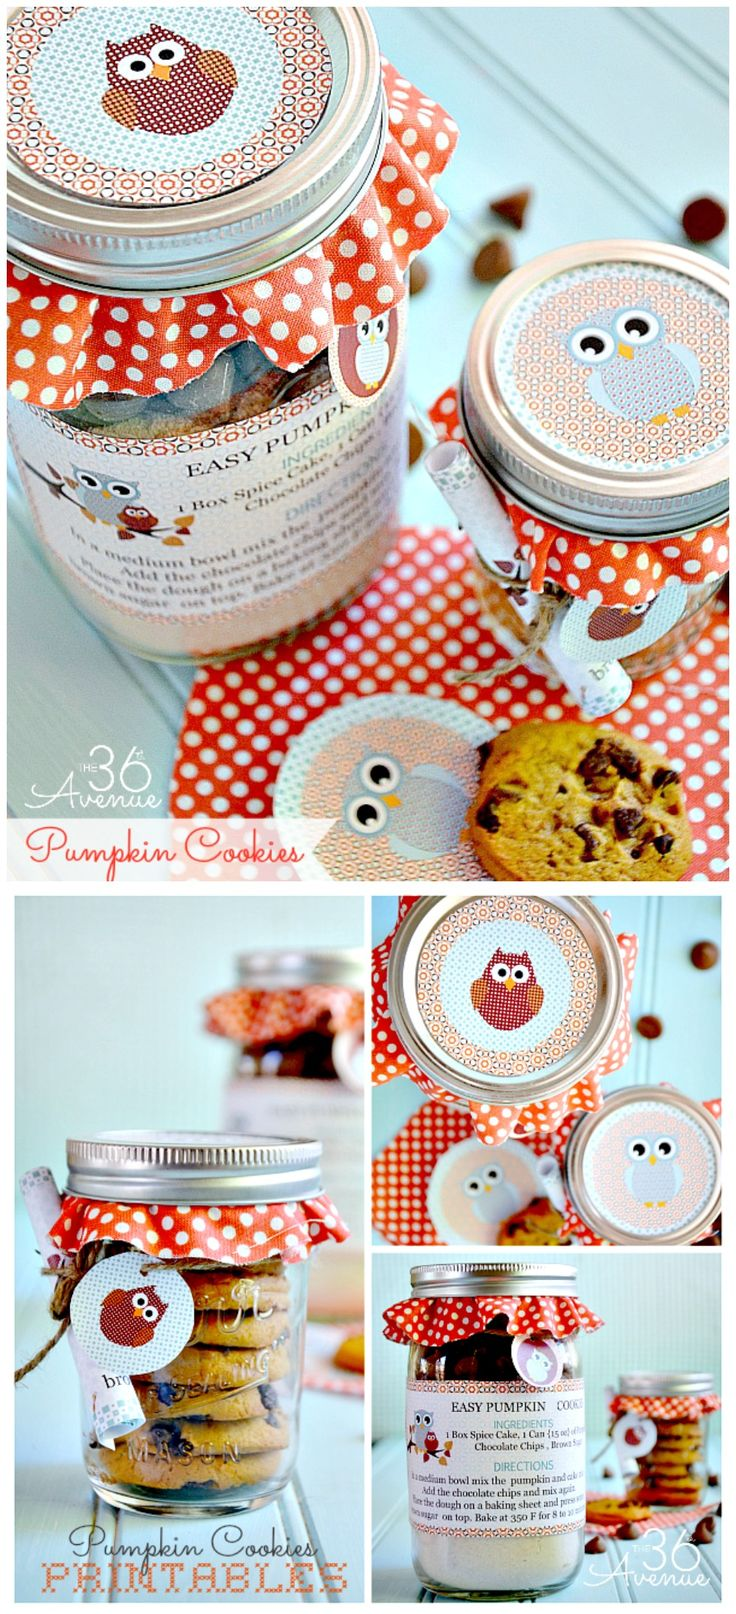 Pumpkin Cookies + Mason jars + Free Printable = ADORABLE and Yummy Gift. Get the recipe and tutorial at the36thavenue.com